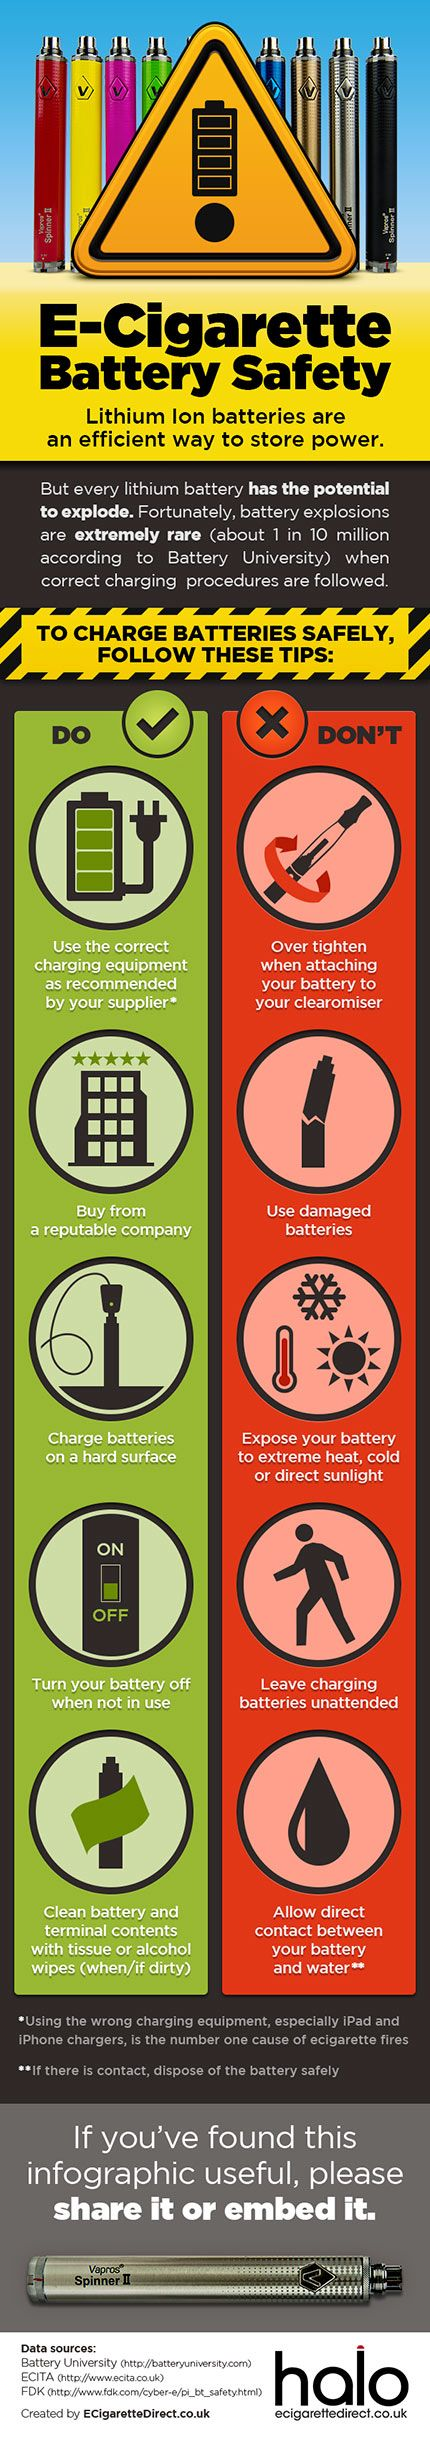 Prevent exploding e-cigarette batteries